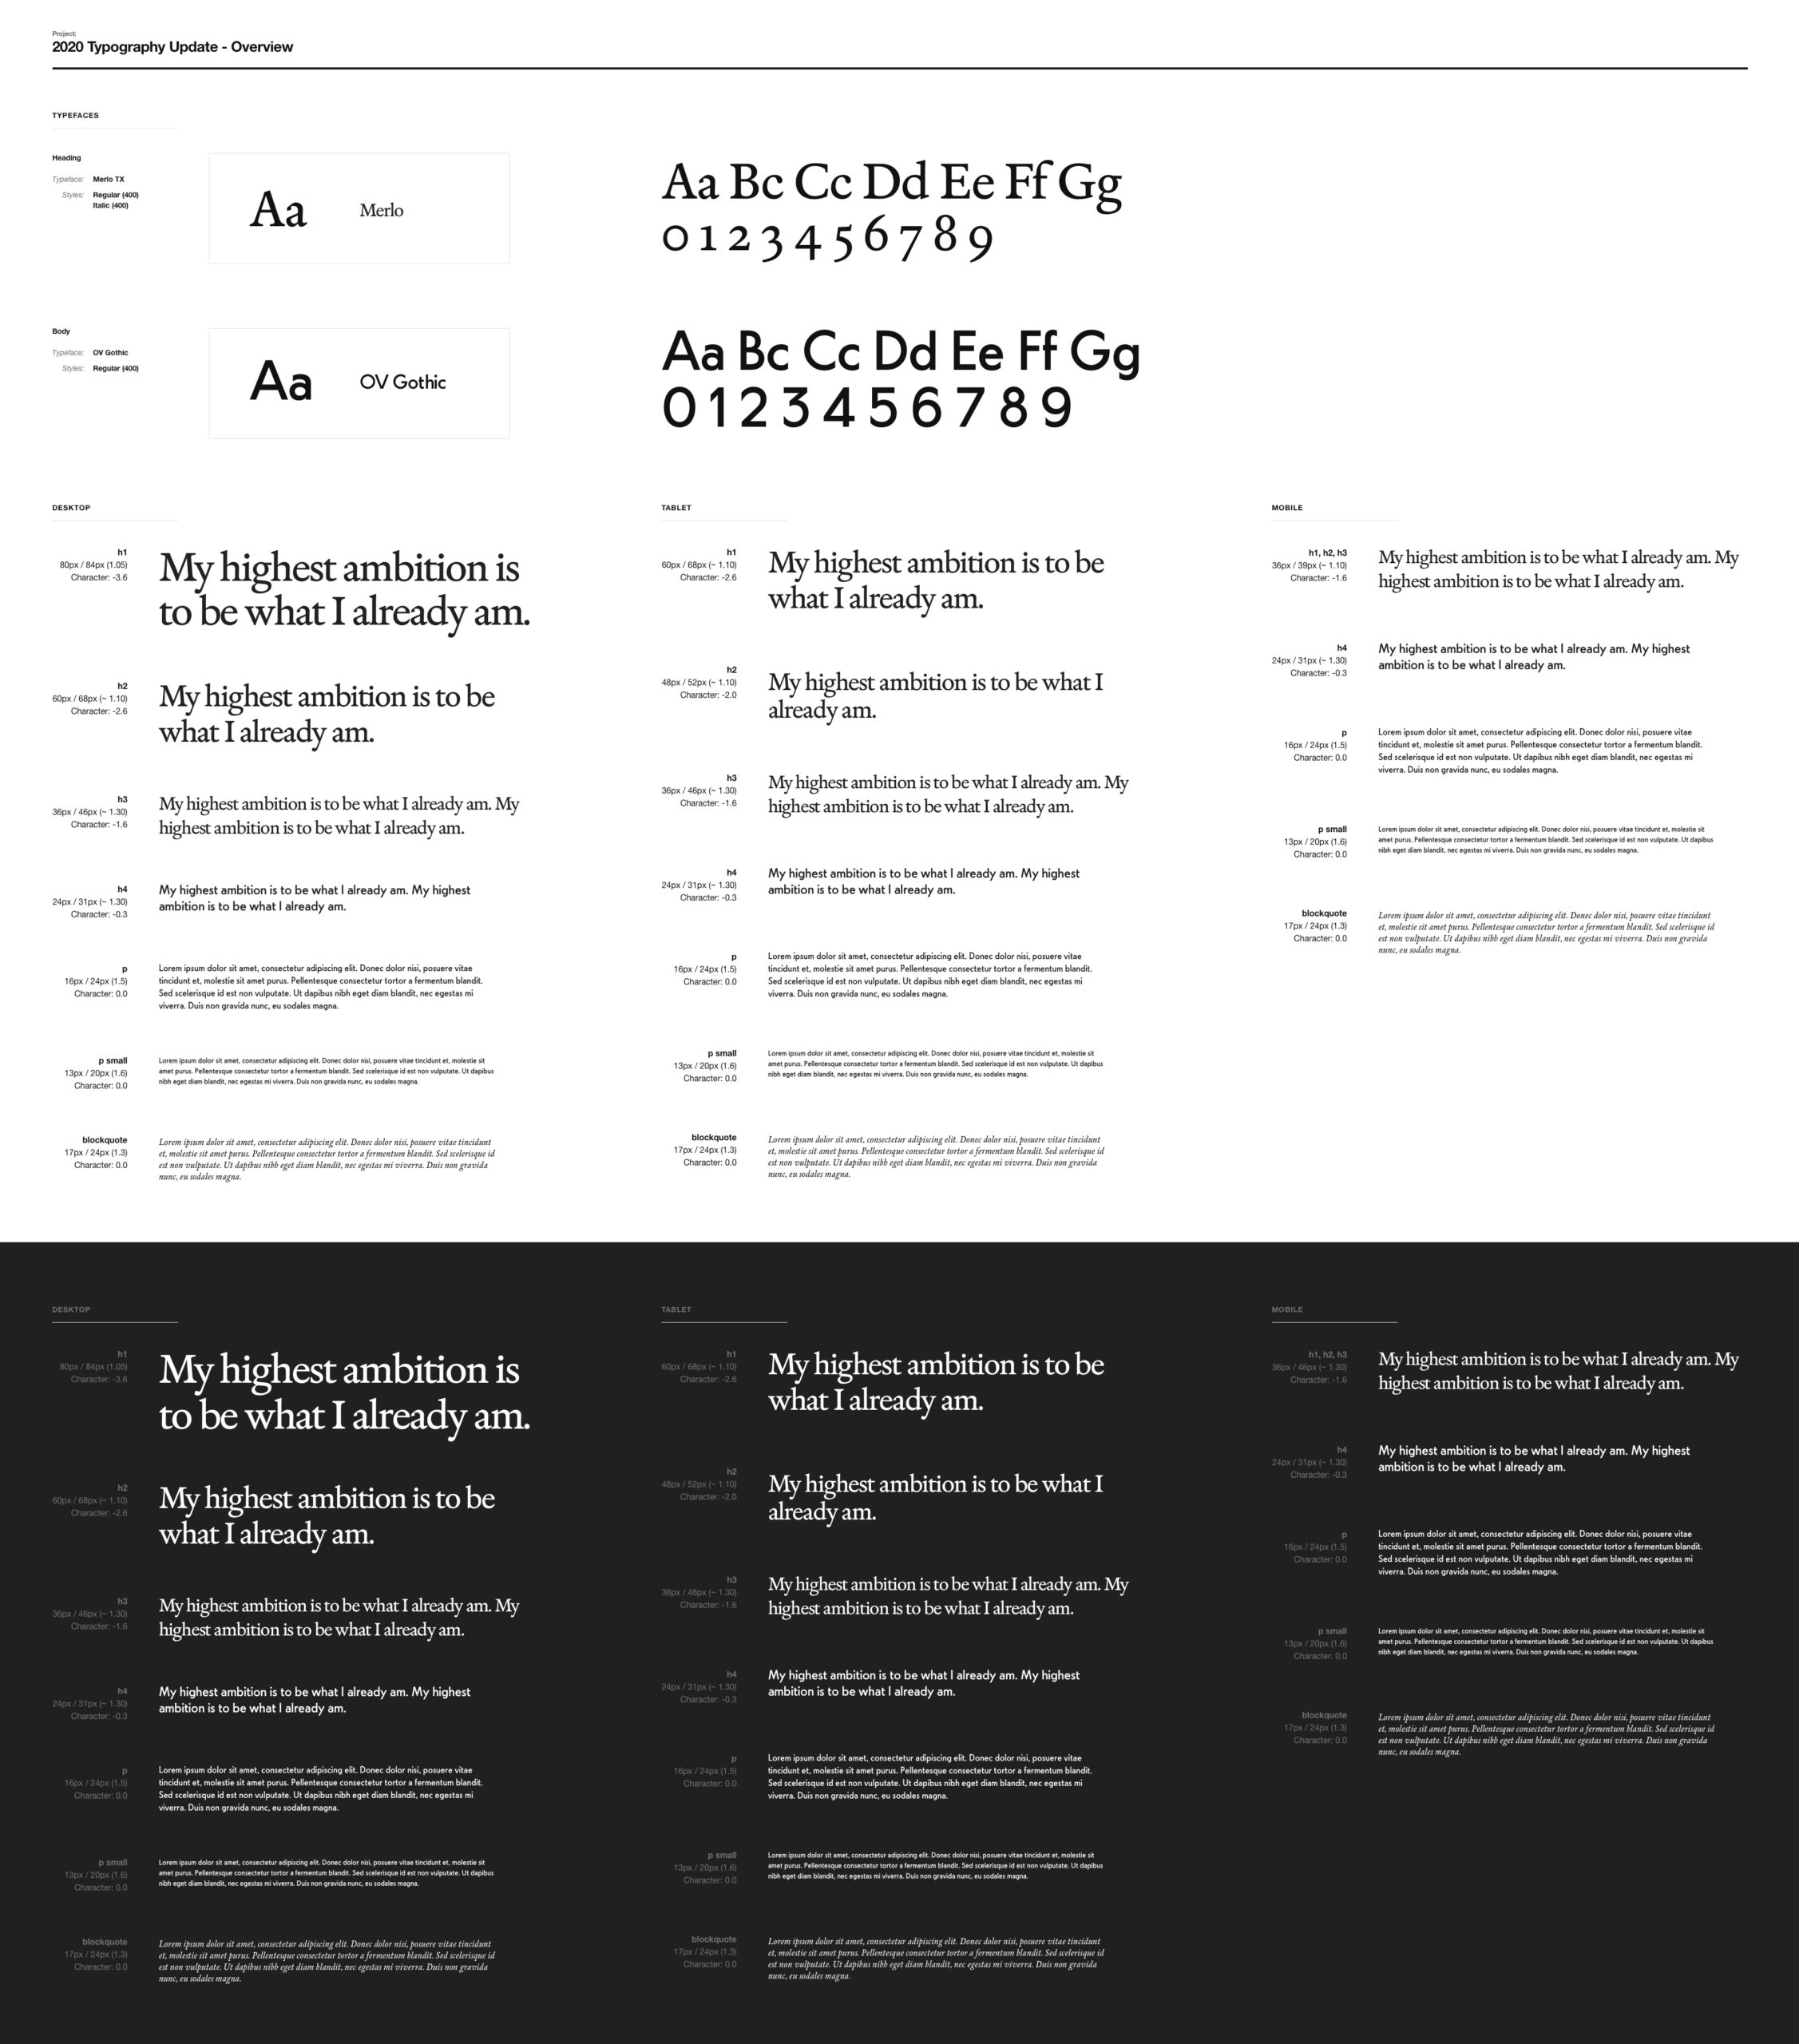 2020-Typography-Update-Overview